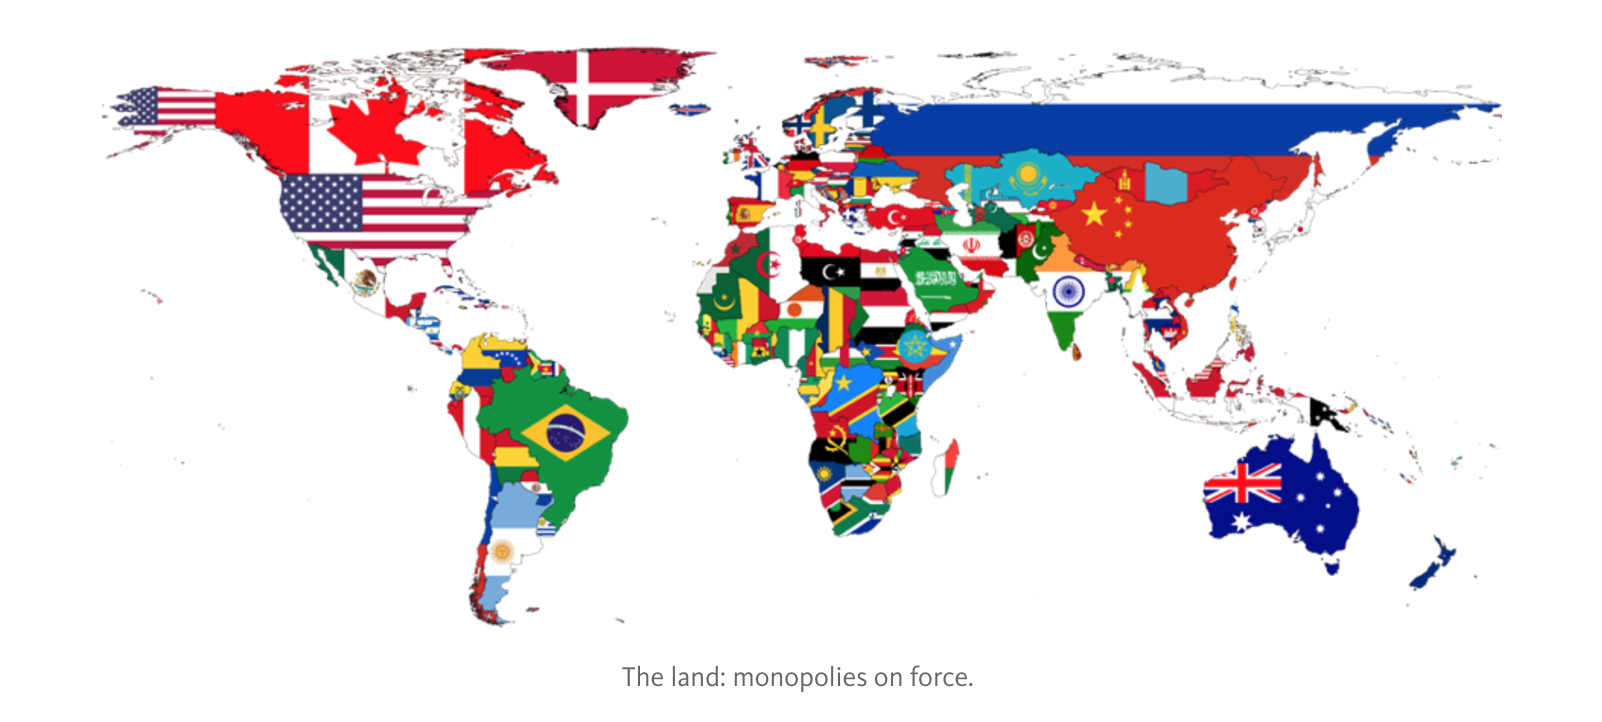 The land: monopolies on force.